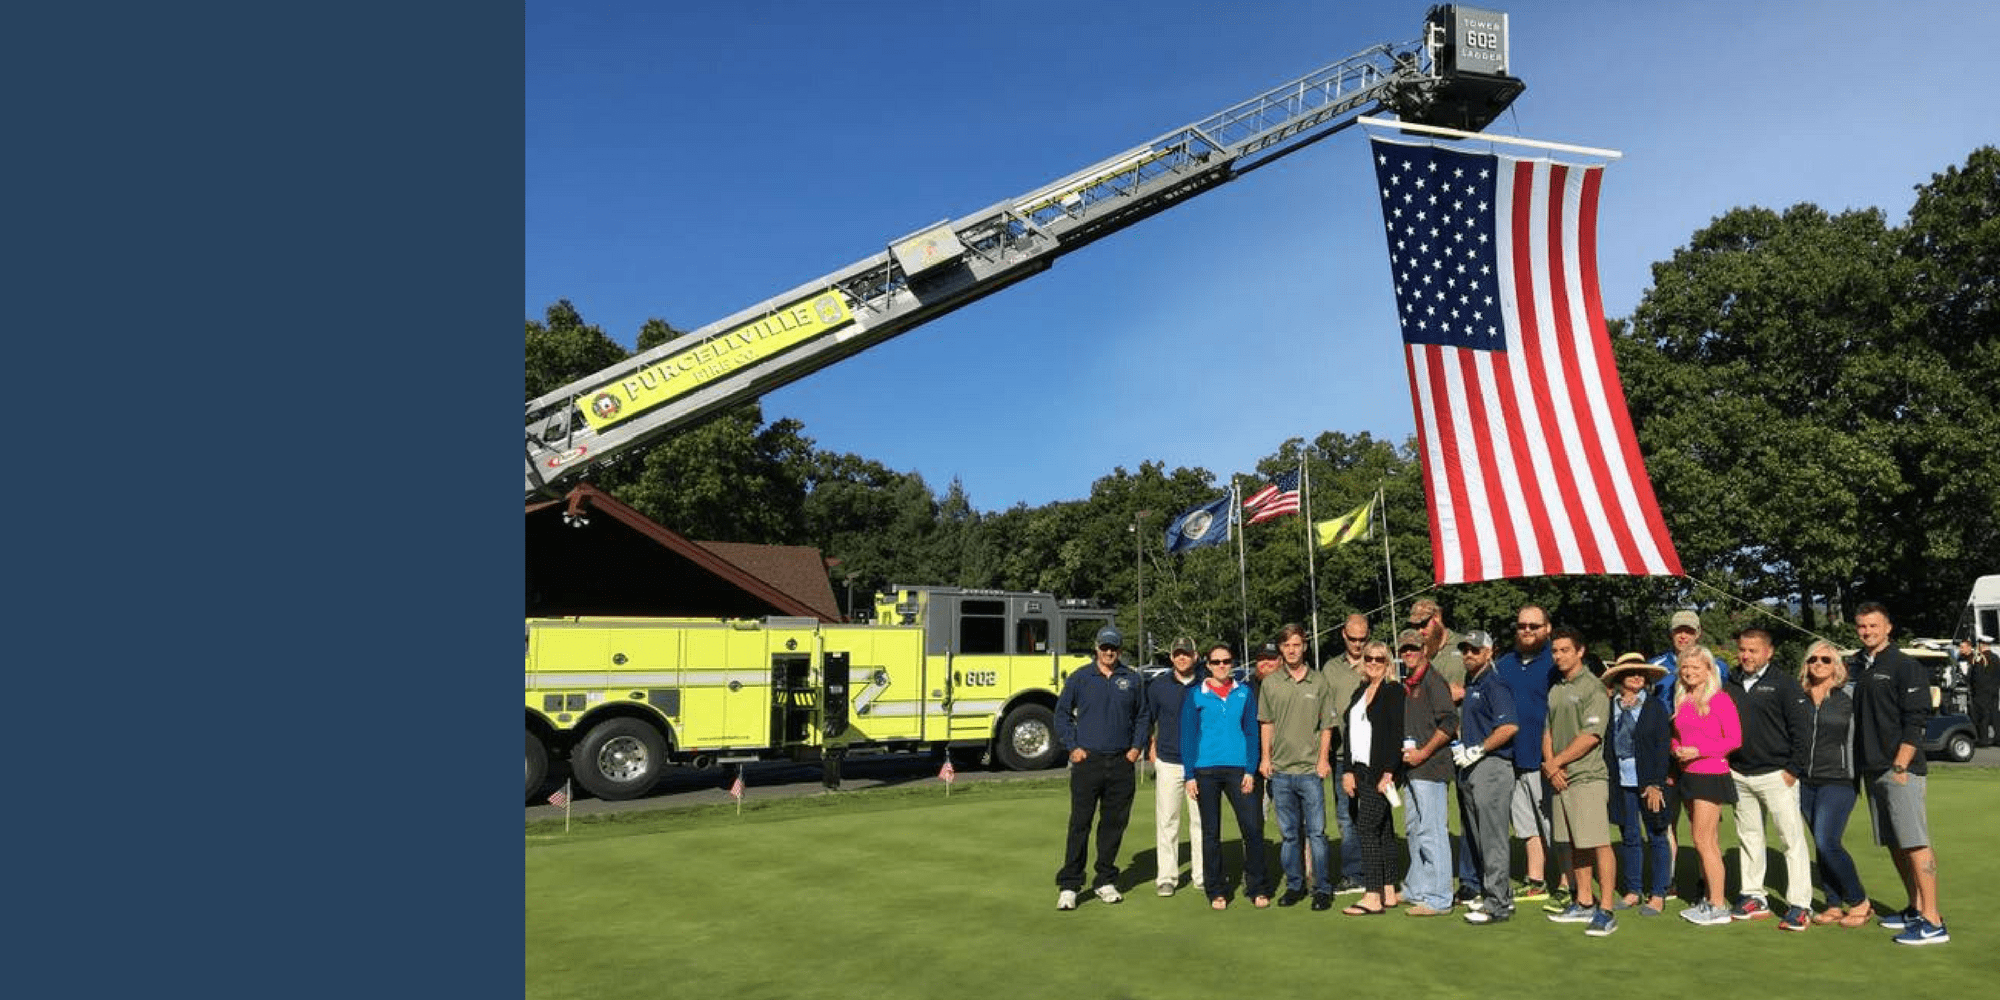 Stephan Mace Memorial Golf Tournament raises $50,000 for HeroHomes